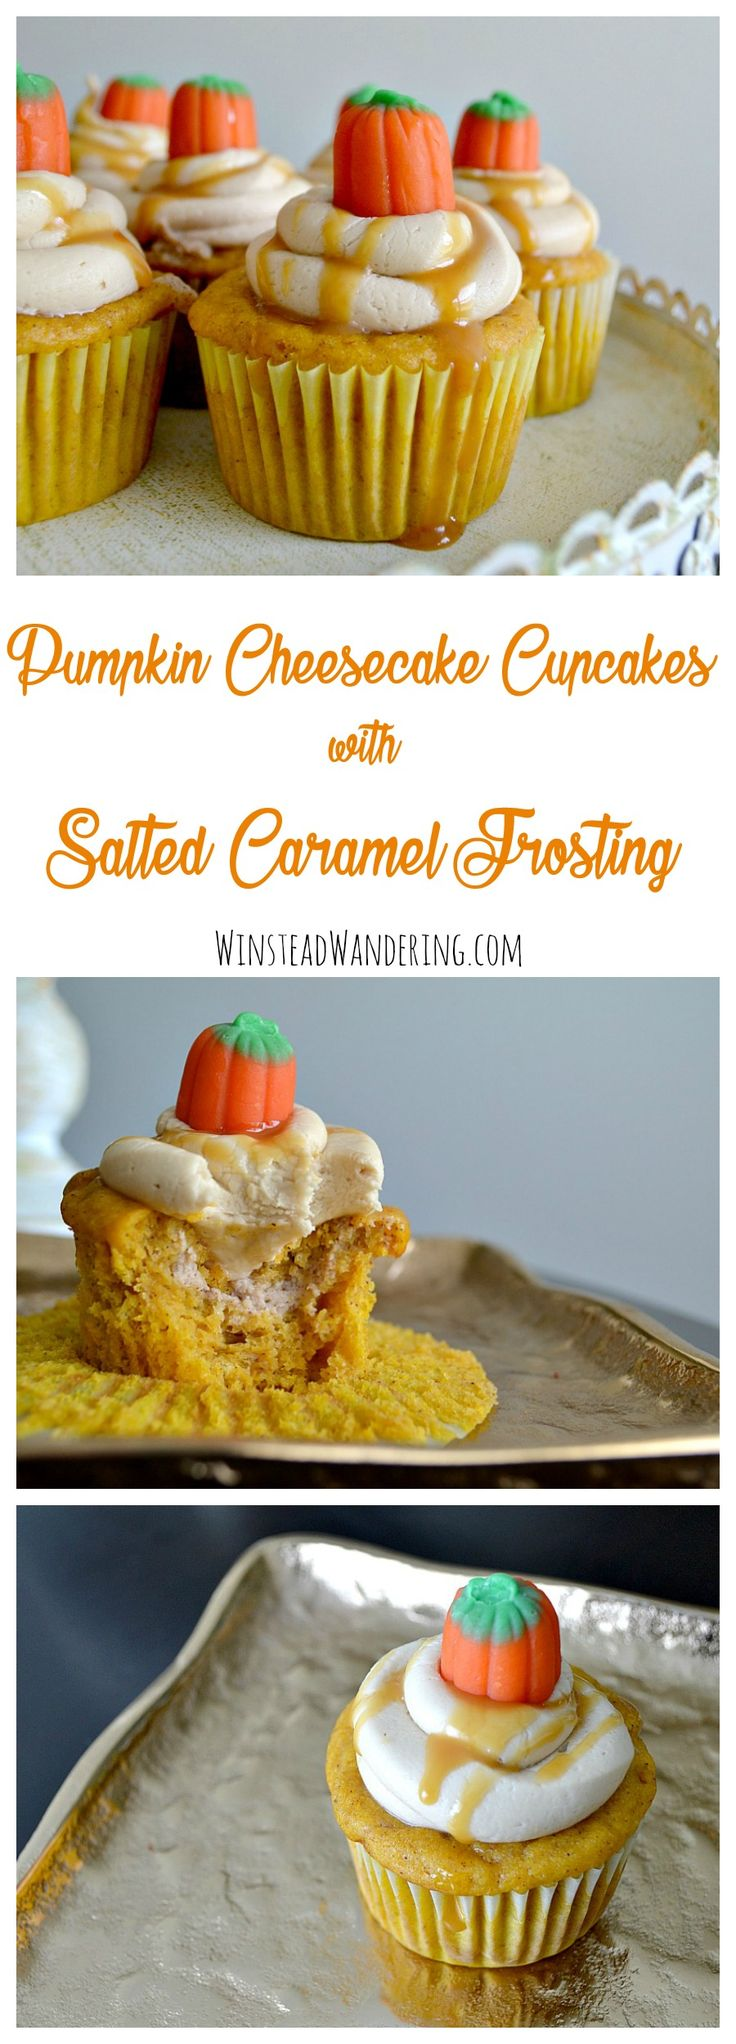 Perfectly sweet cupcakes with a ribbon of creamy filling and a topping of decadent frosting. You've got to try Pumpkin Cheesecake Cupcakes with Salted Caramel Frosting!